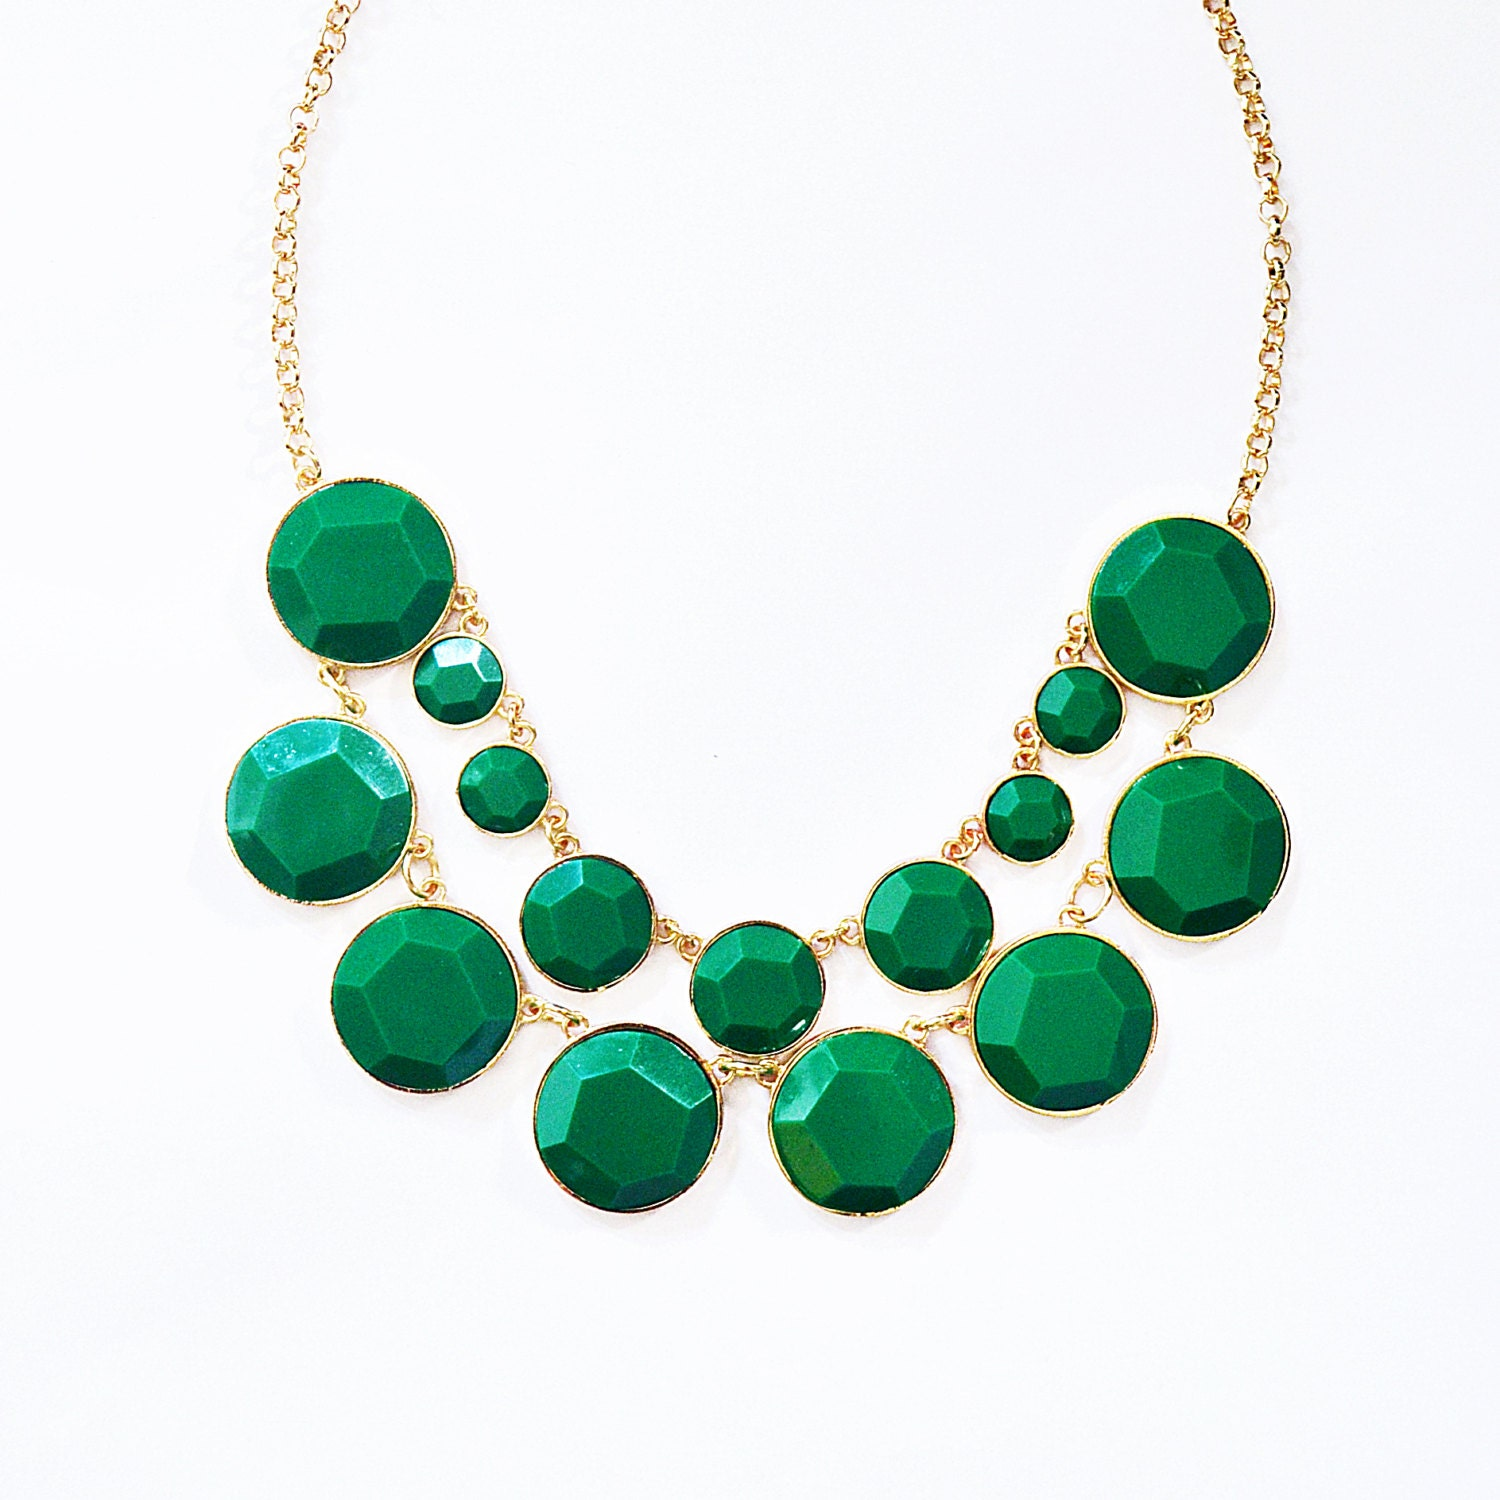 Baublebox Bib - Bauble Necklace - Green Necklace - Green Bib - Kate Spade Inspired - Statement Necklace - Kate Spade Baublebox Ship from US